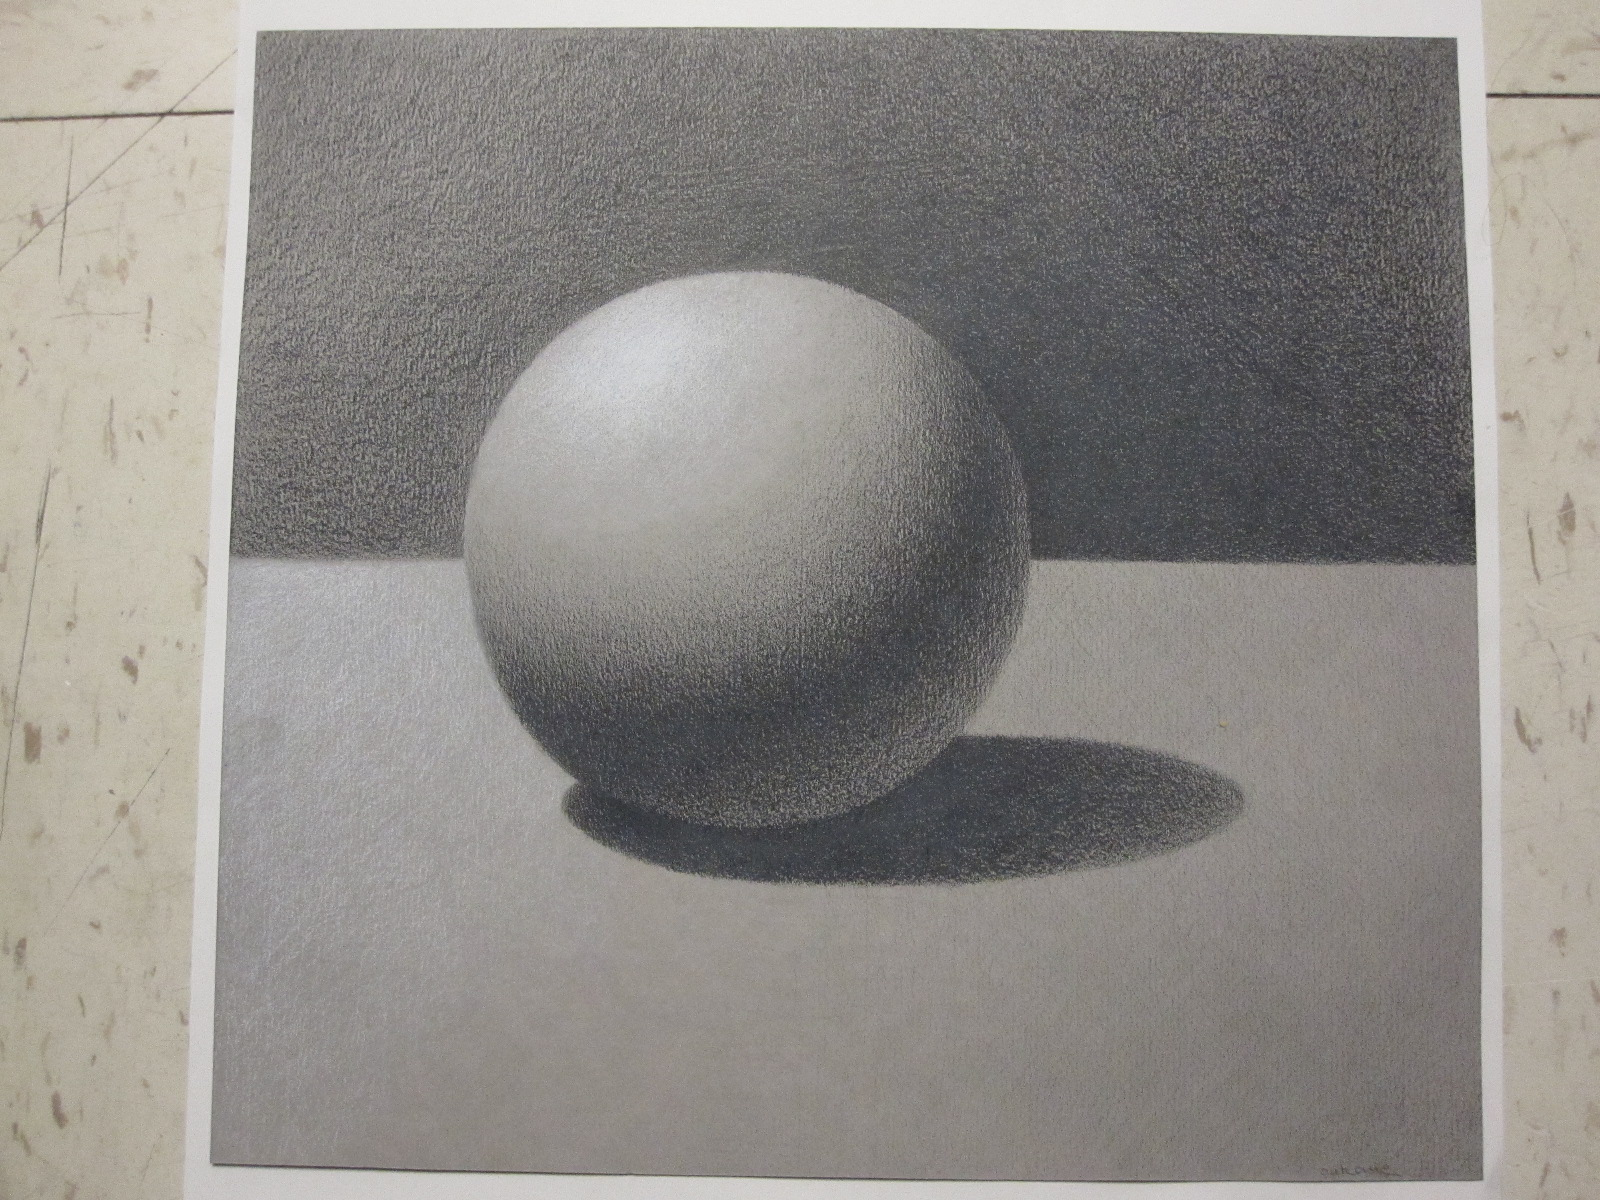 Drawn spheric Free on using conceptual Sphere